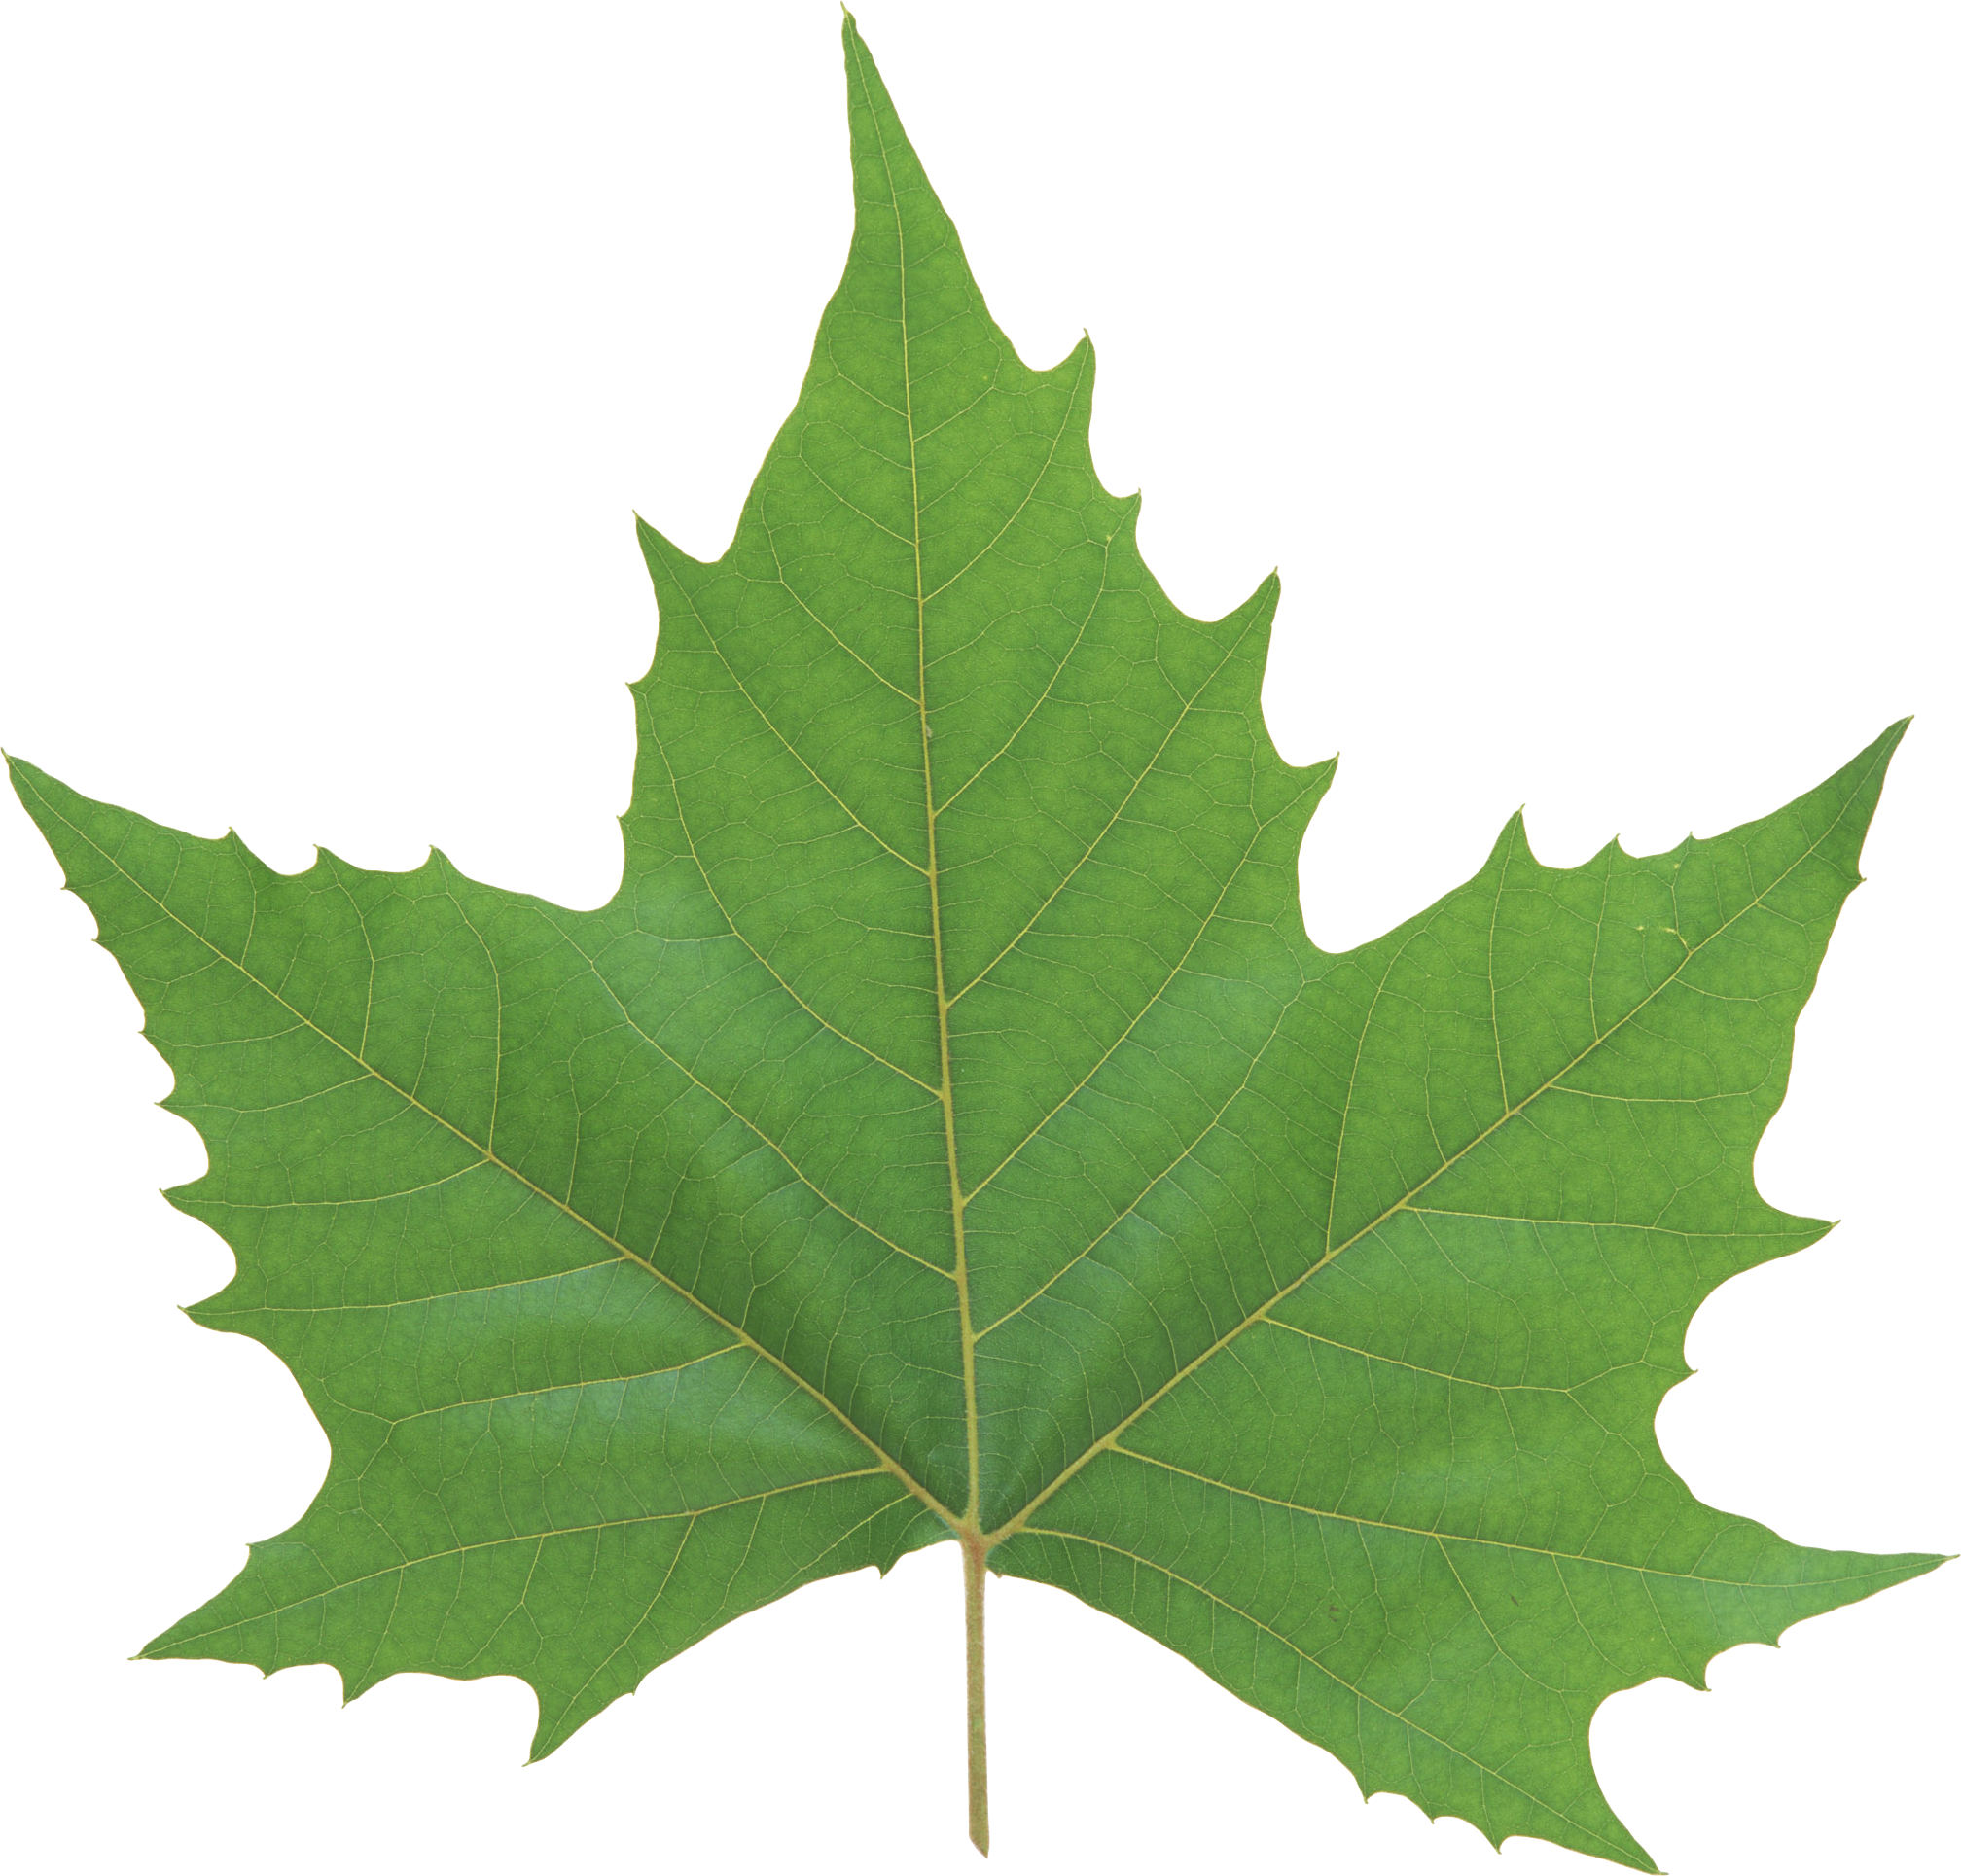 Green Leaf Png - Leaves, Transparent background PNG HD thumbnail